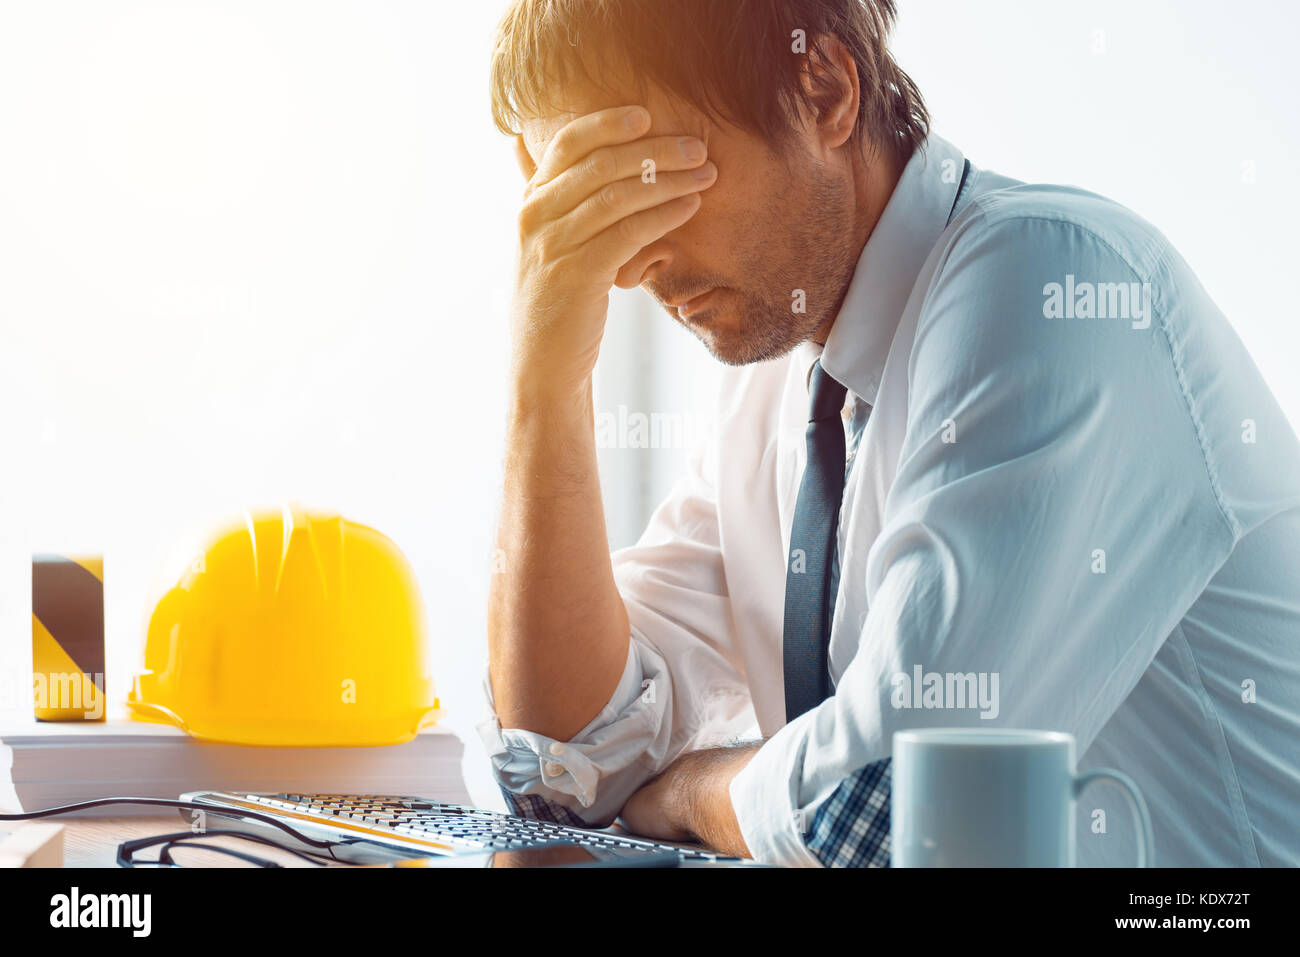 Architect and construction engineer having problems at work in office, construction engineer working with computer - Stock Image